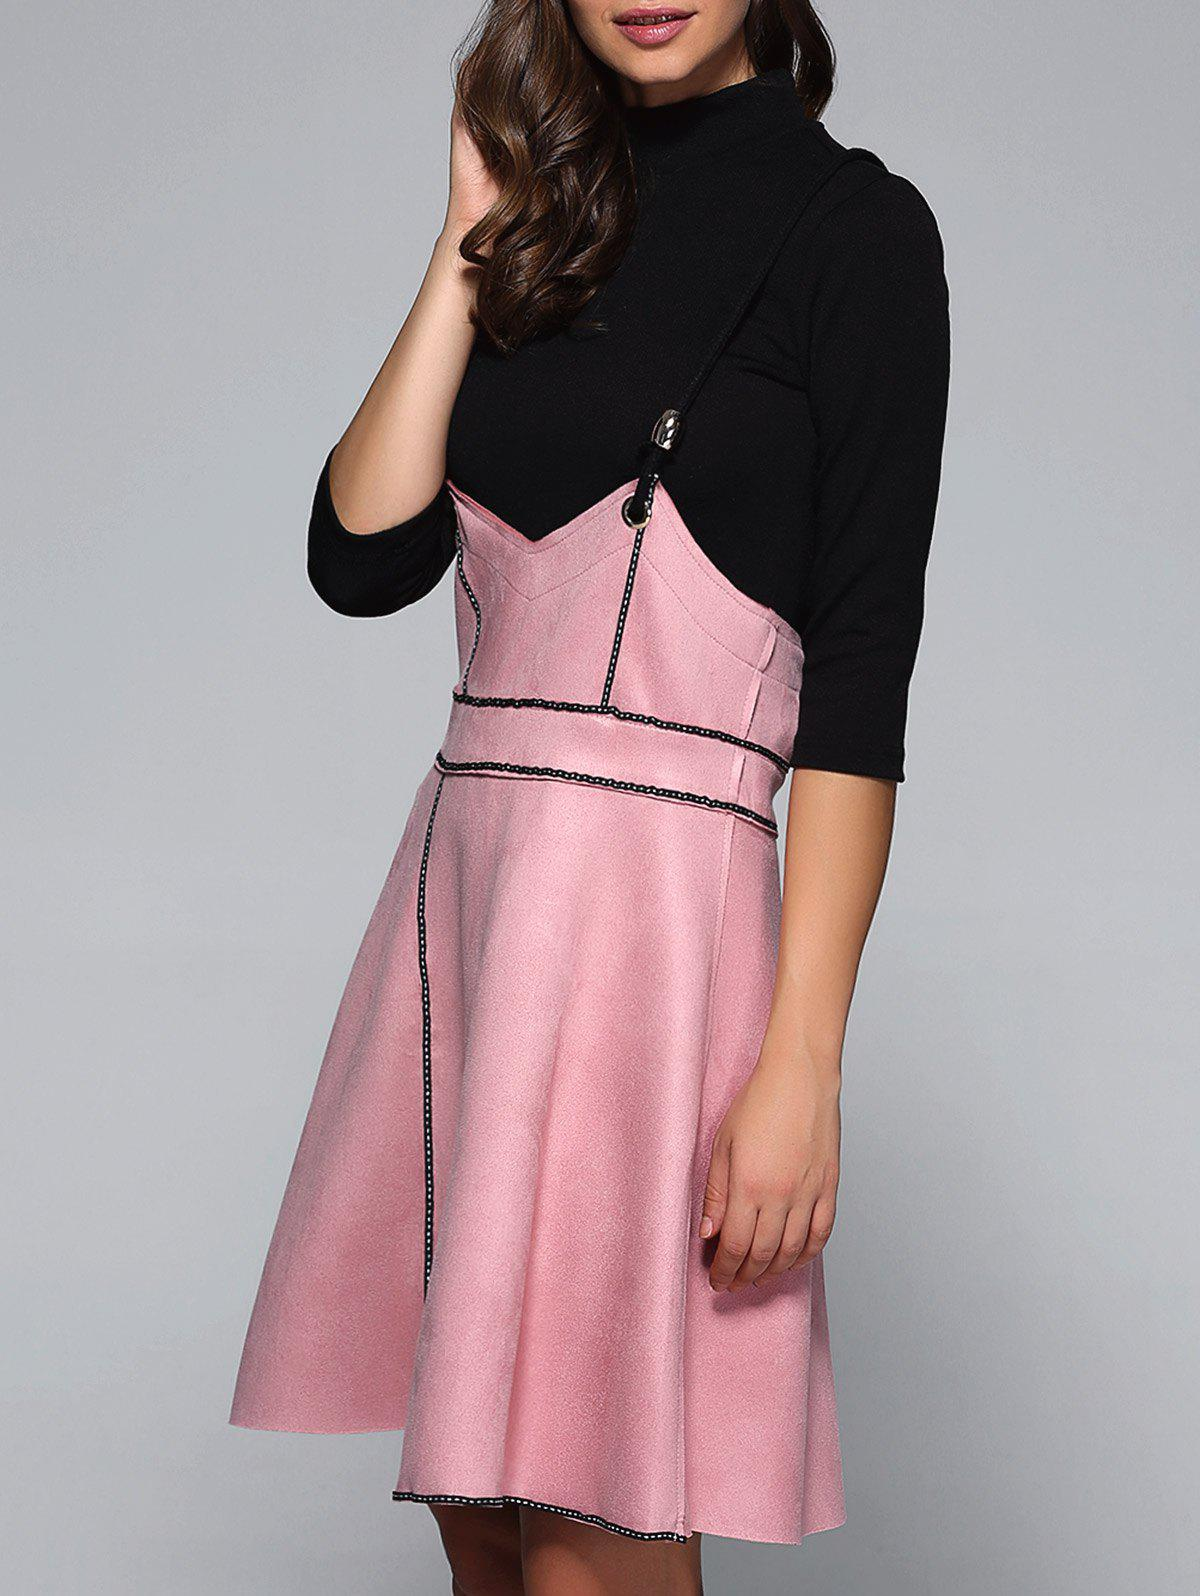 Plain Knitwear + Cami Suede Zippered Dress Twinset - PINK L